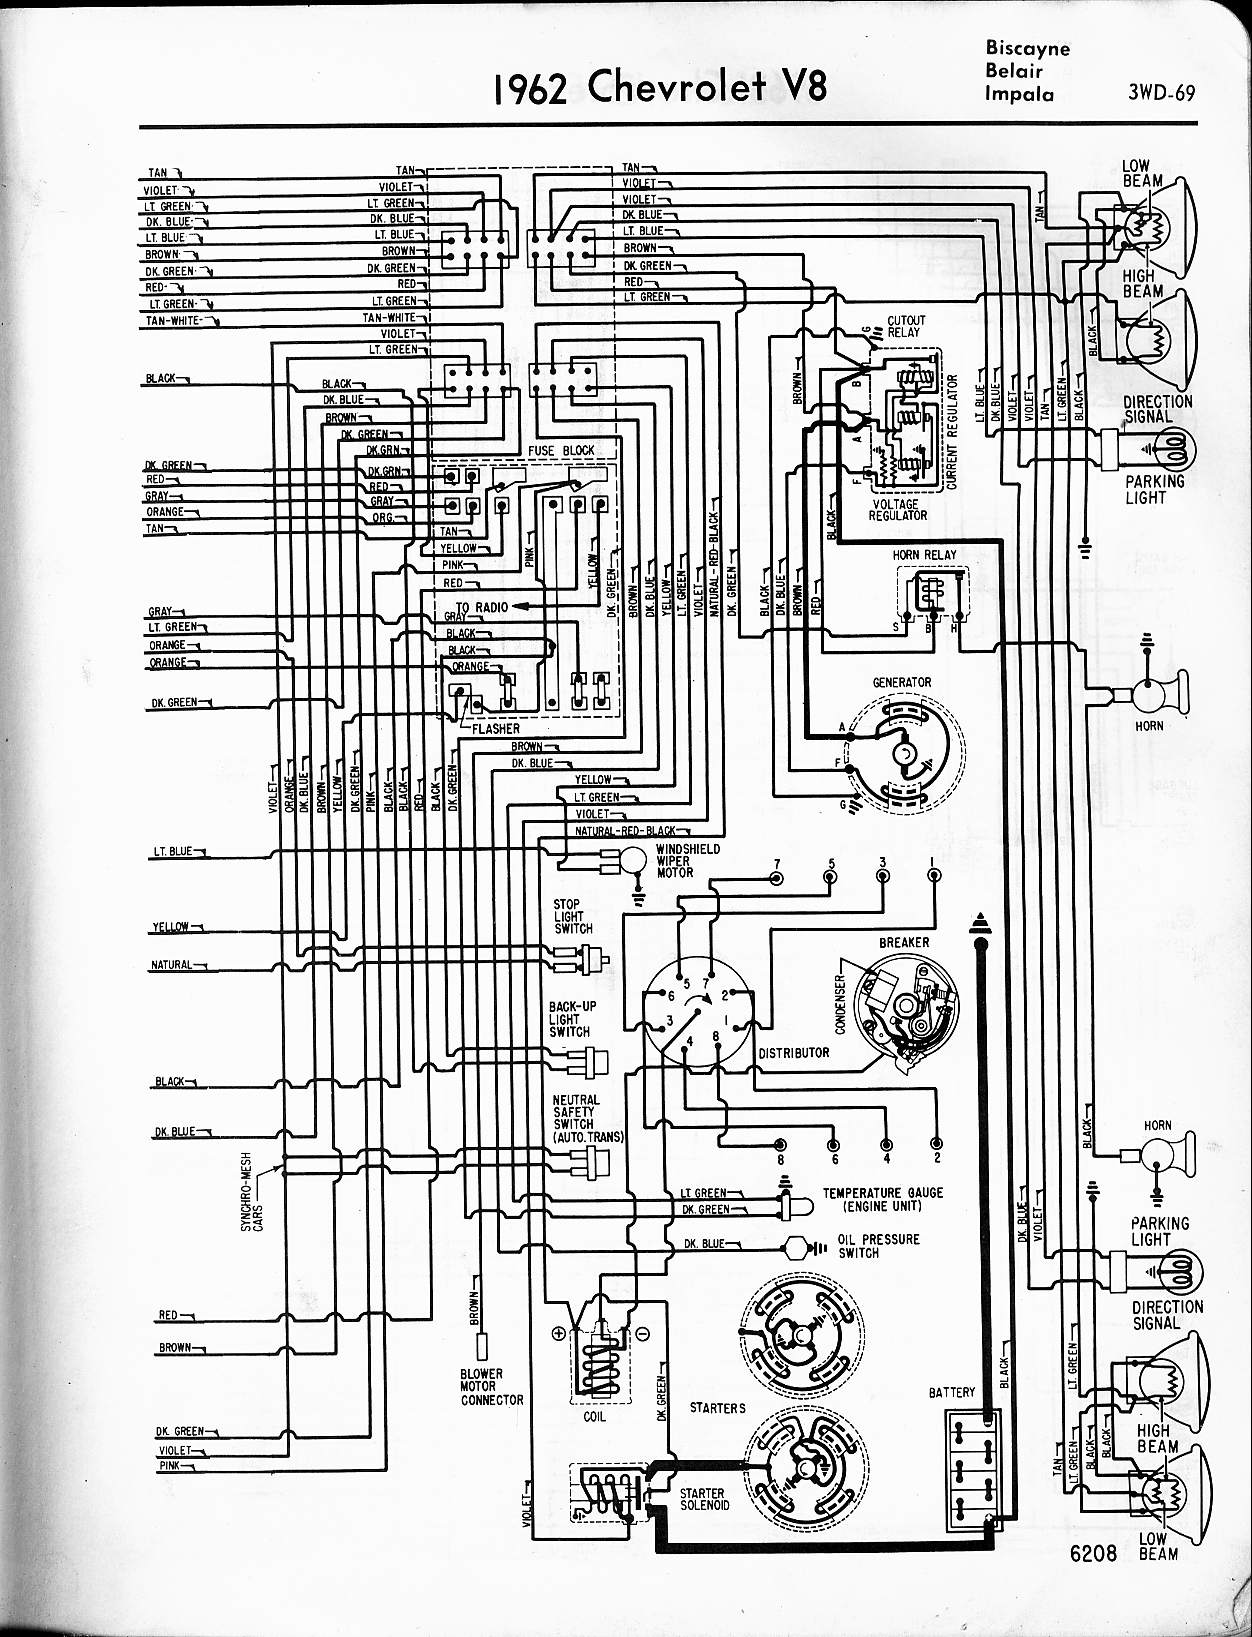 wiring diagram for 1965 chevy truck wiring diagram online Chevy Truck Wiring Harness Standard 57 65 chevy wiring diagrams wiring diagram for 1965 chevrolet pickup wiring diagram for 1965 chevy truck